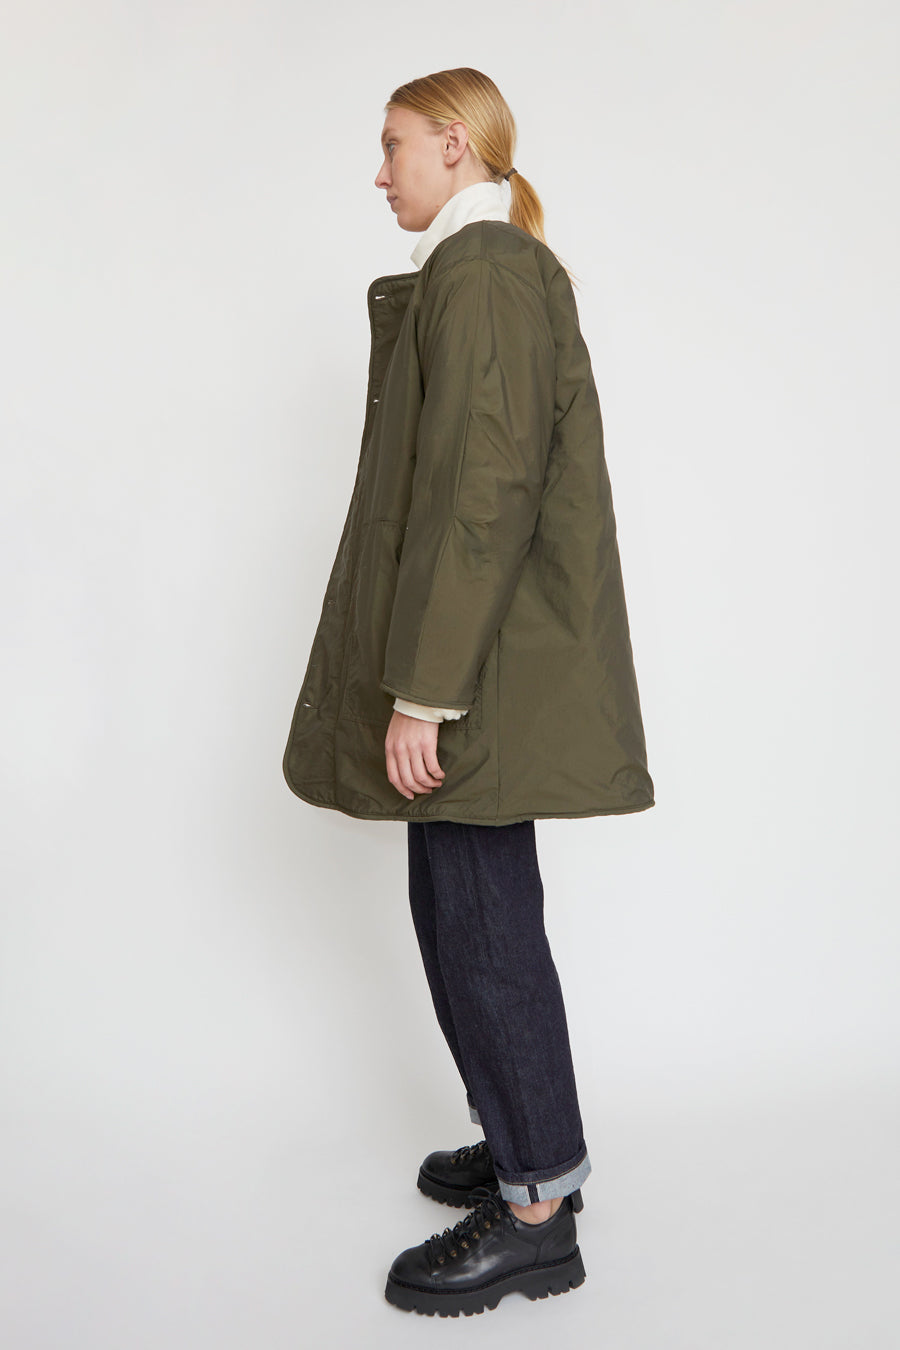 Girls of Dust Reversible Artic Liner in Khaki and White